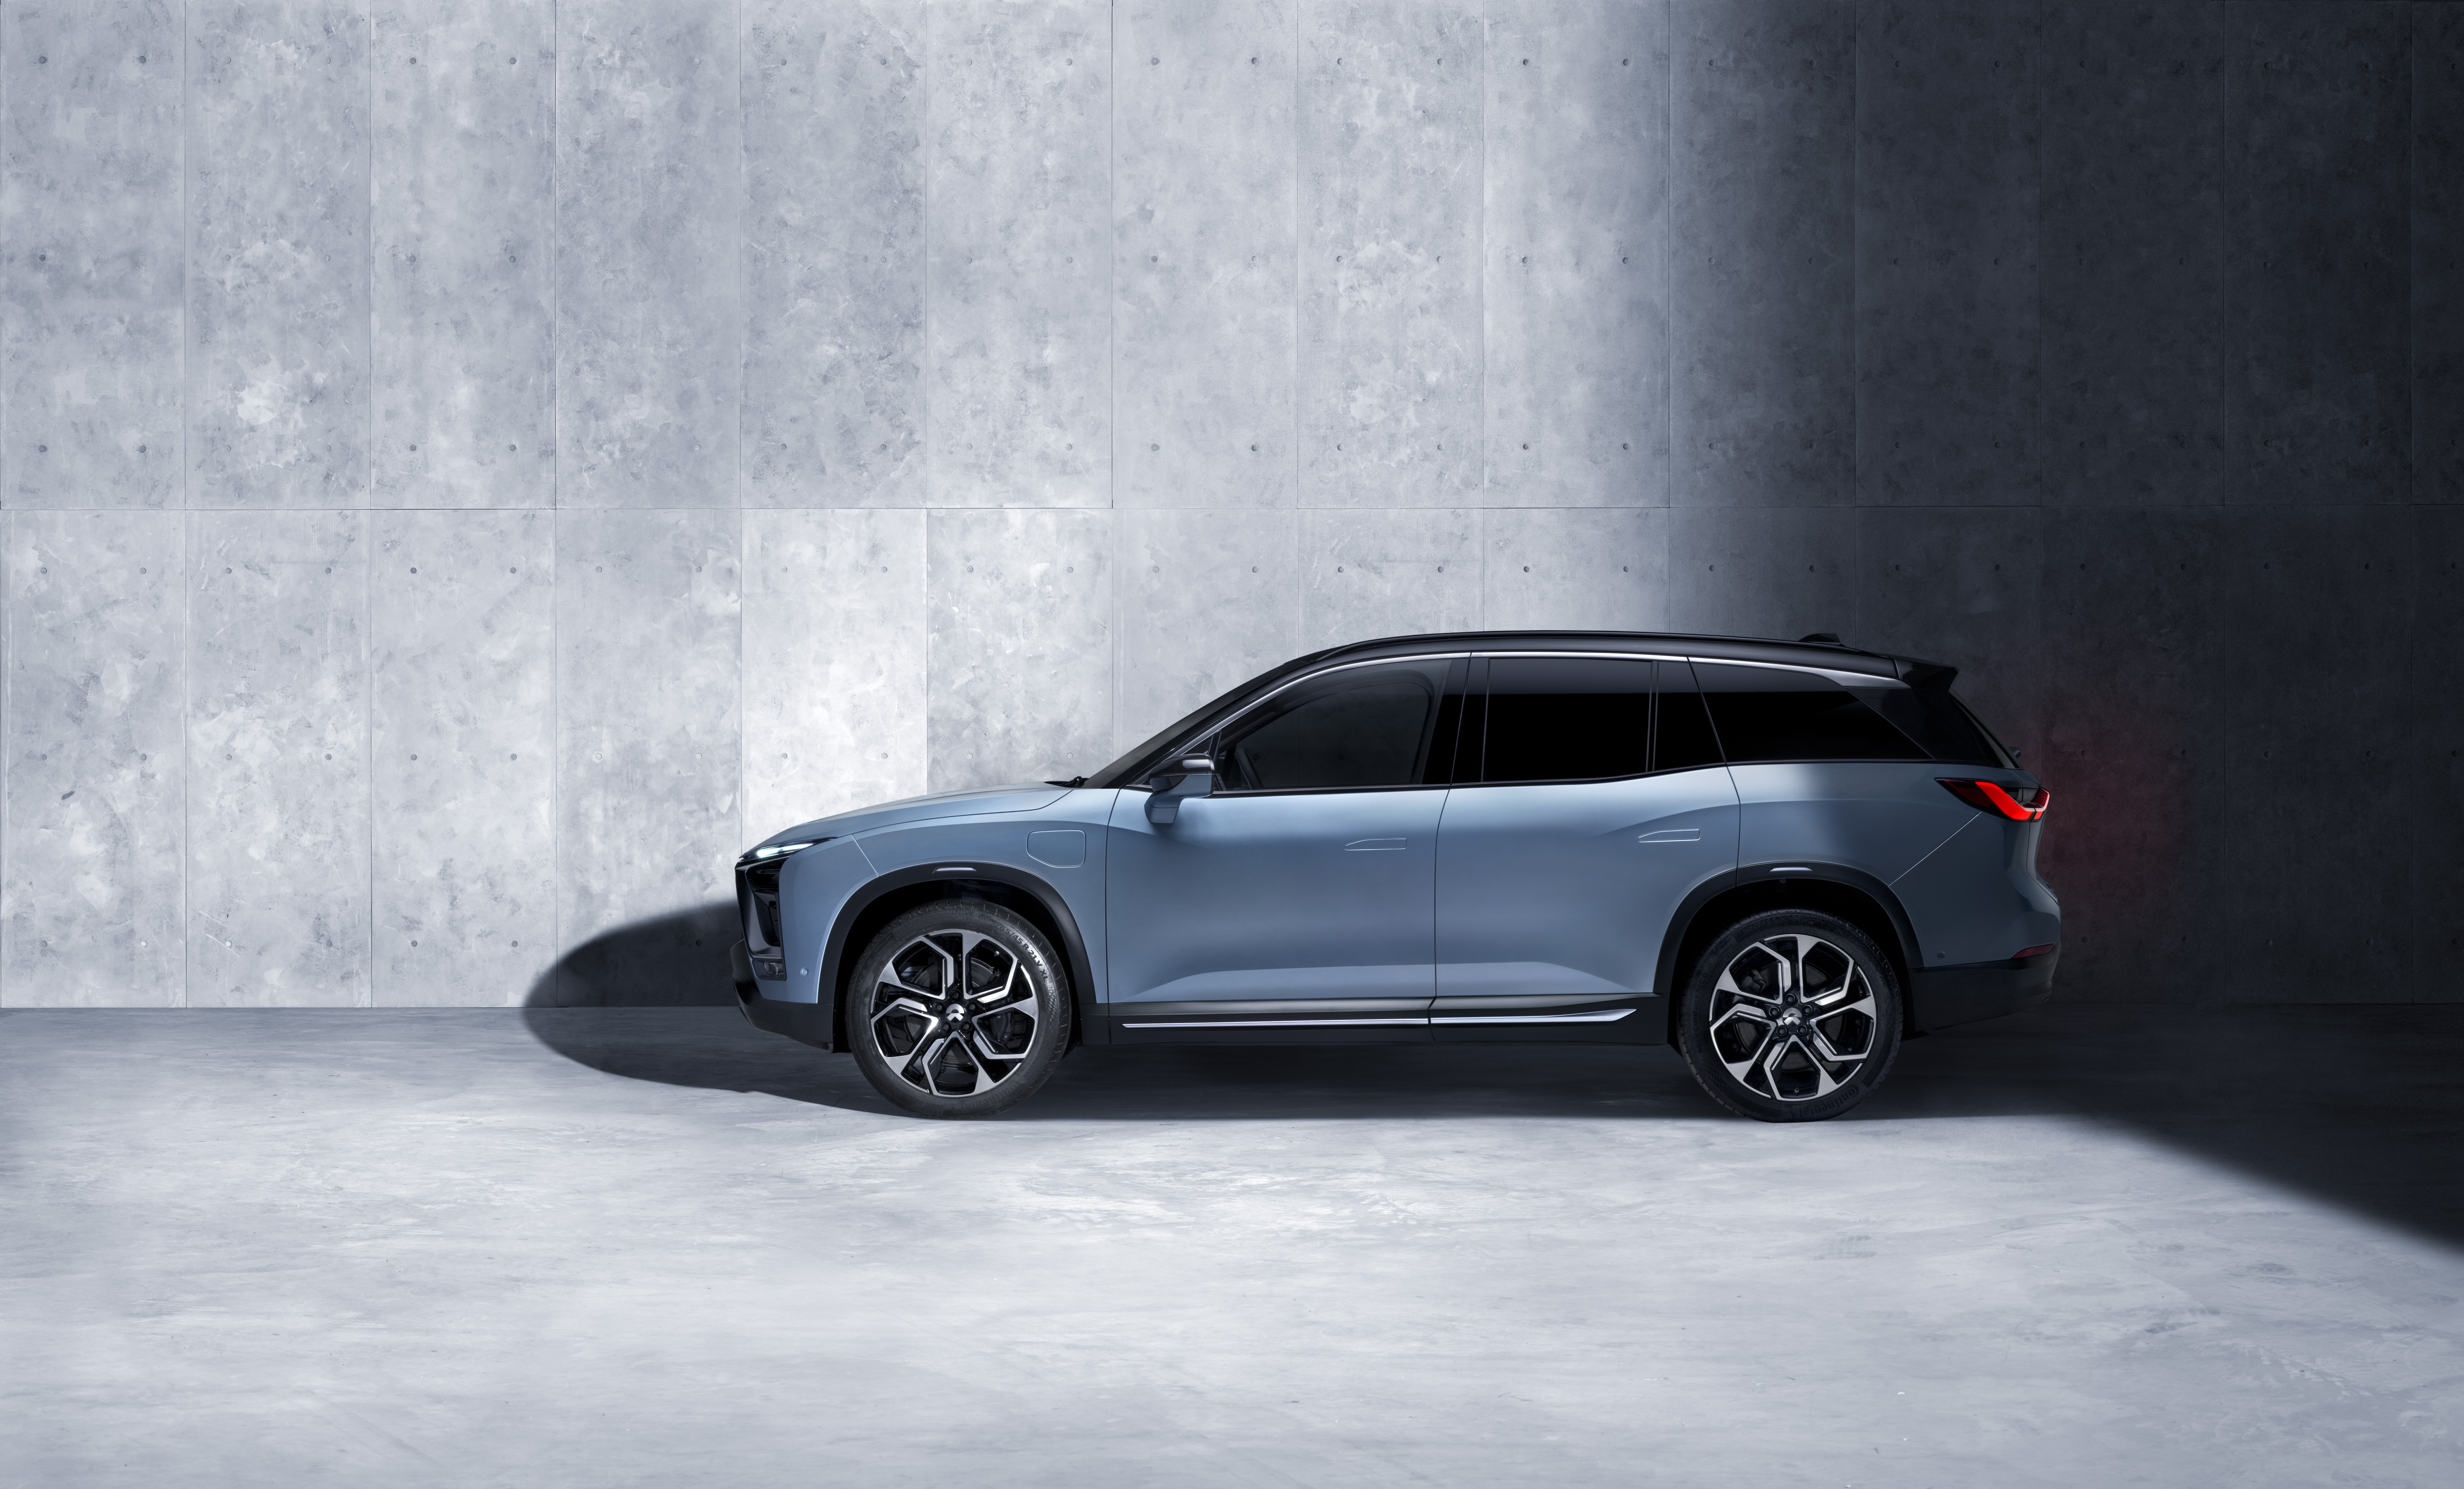 NIO Launches ES8 SUV with New User Experience | Business Wire